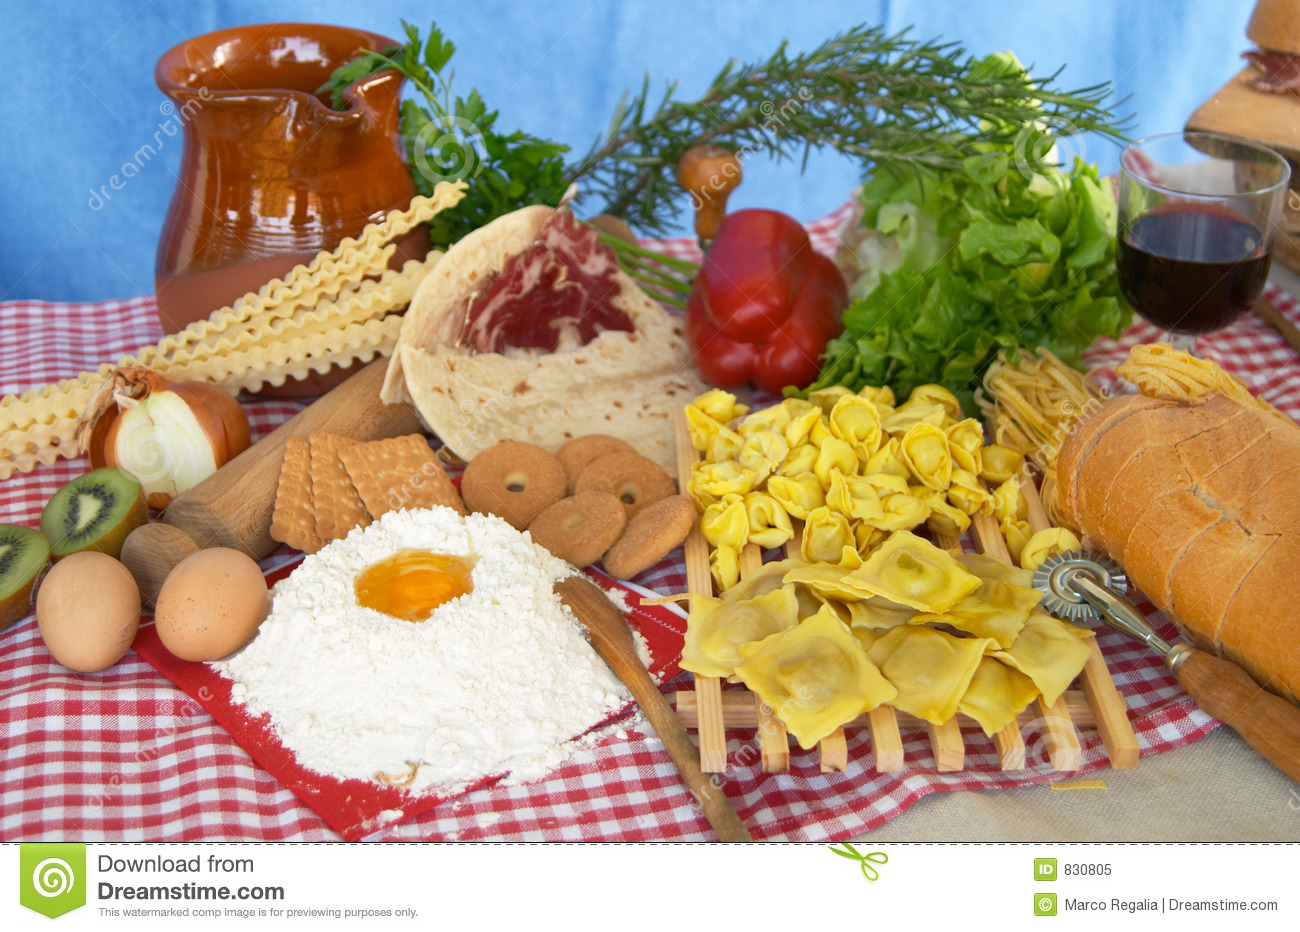 Pasta, egg, flour, biscuits, vegetables, wine